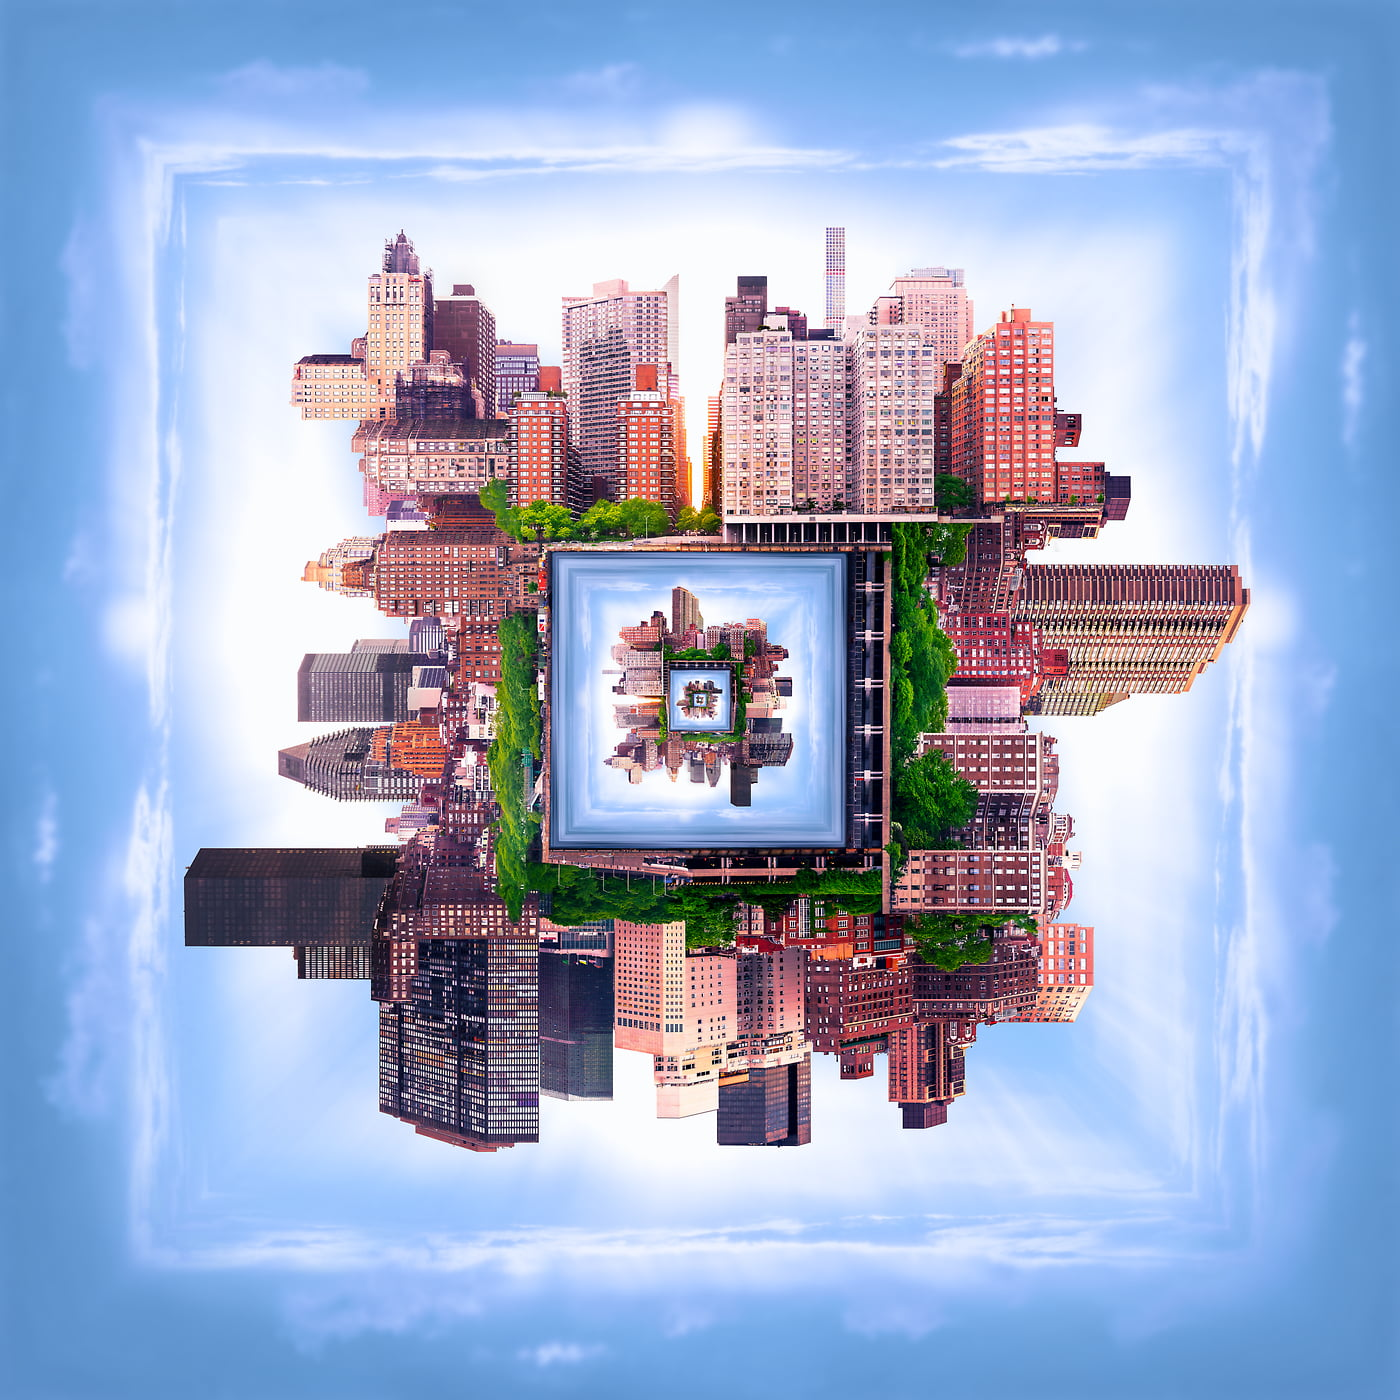 2,204 megapixels! A very high resolution, large-format VAST photo print of a surreal city in a square shape; artistic fine art skyline photograph created by Dan Piech in Midtown East, Manhattan, New York City